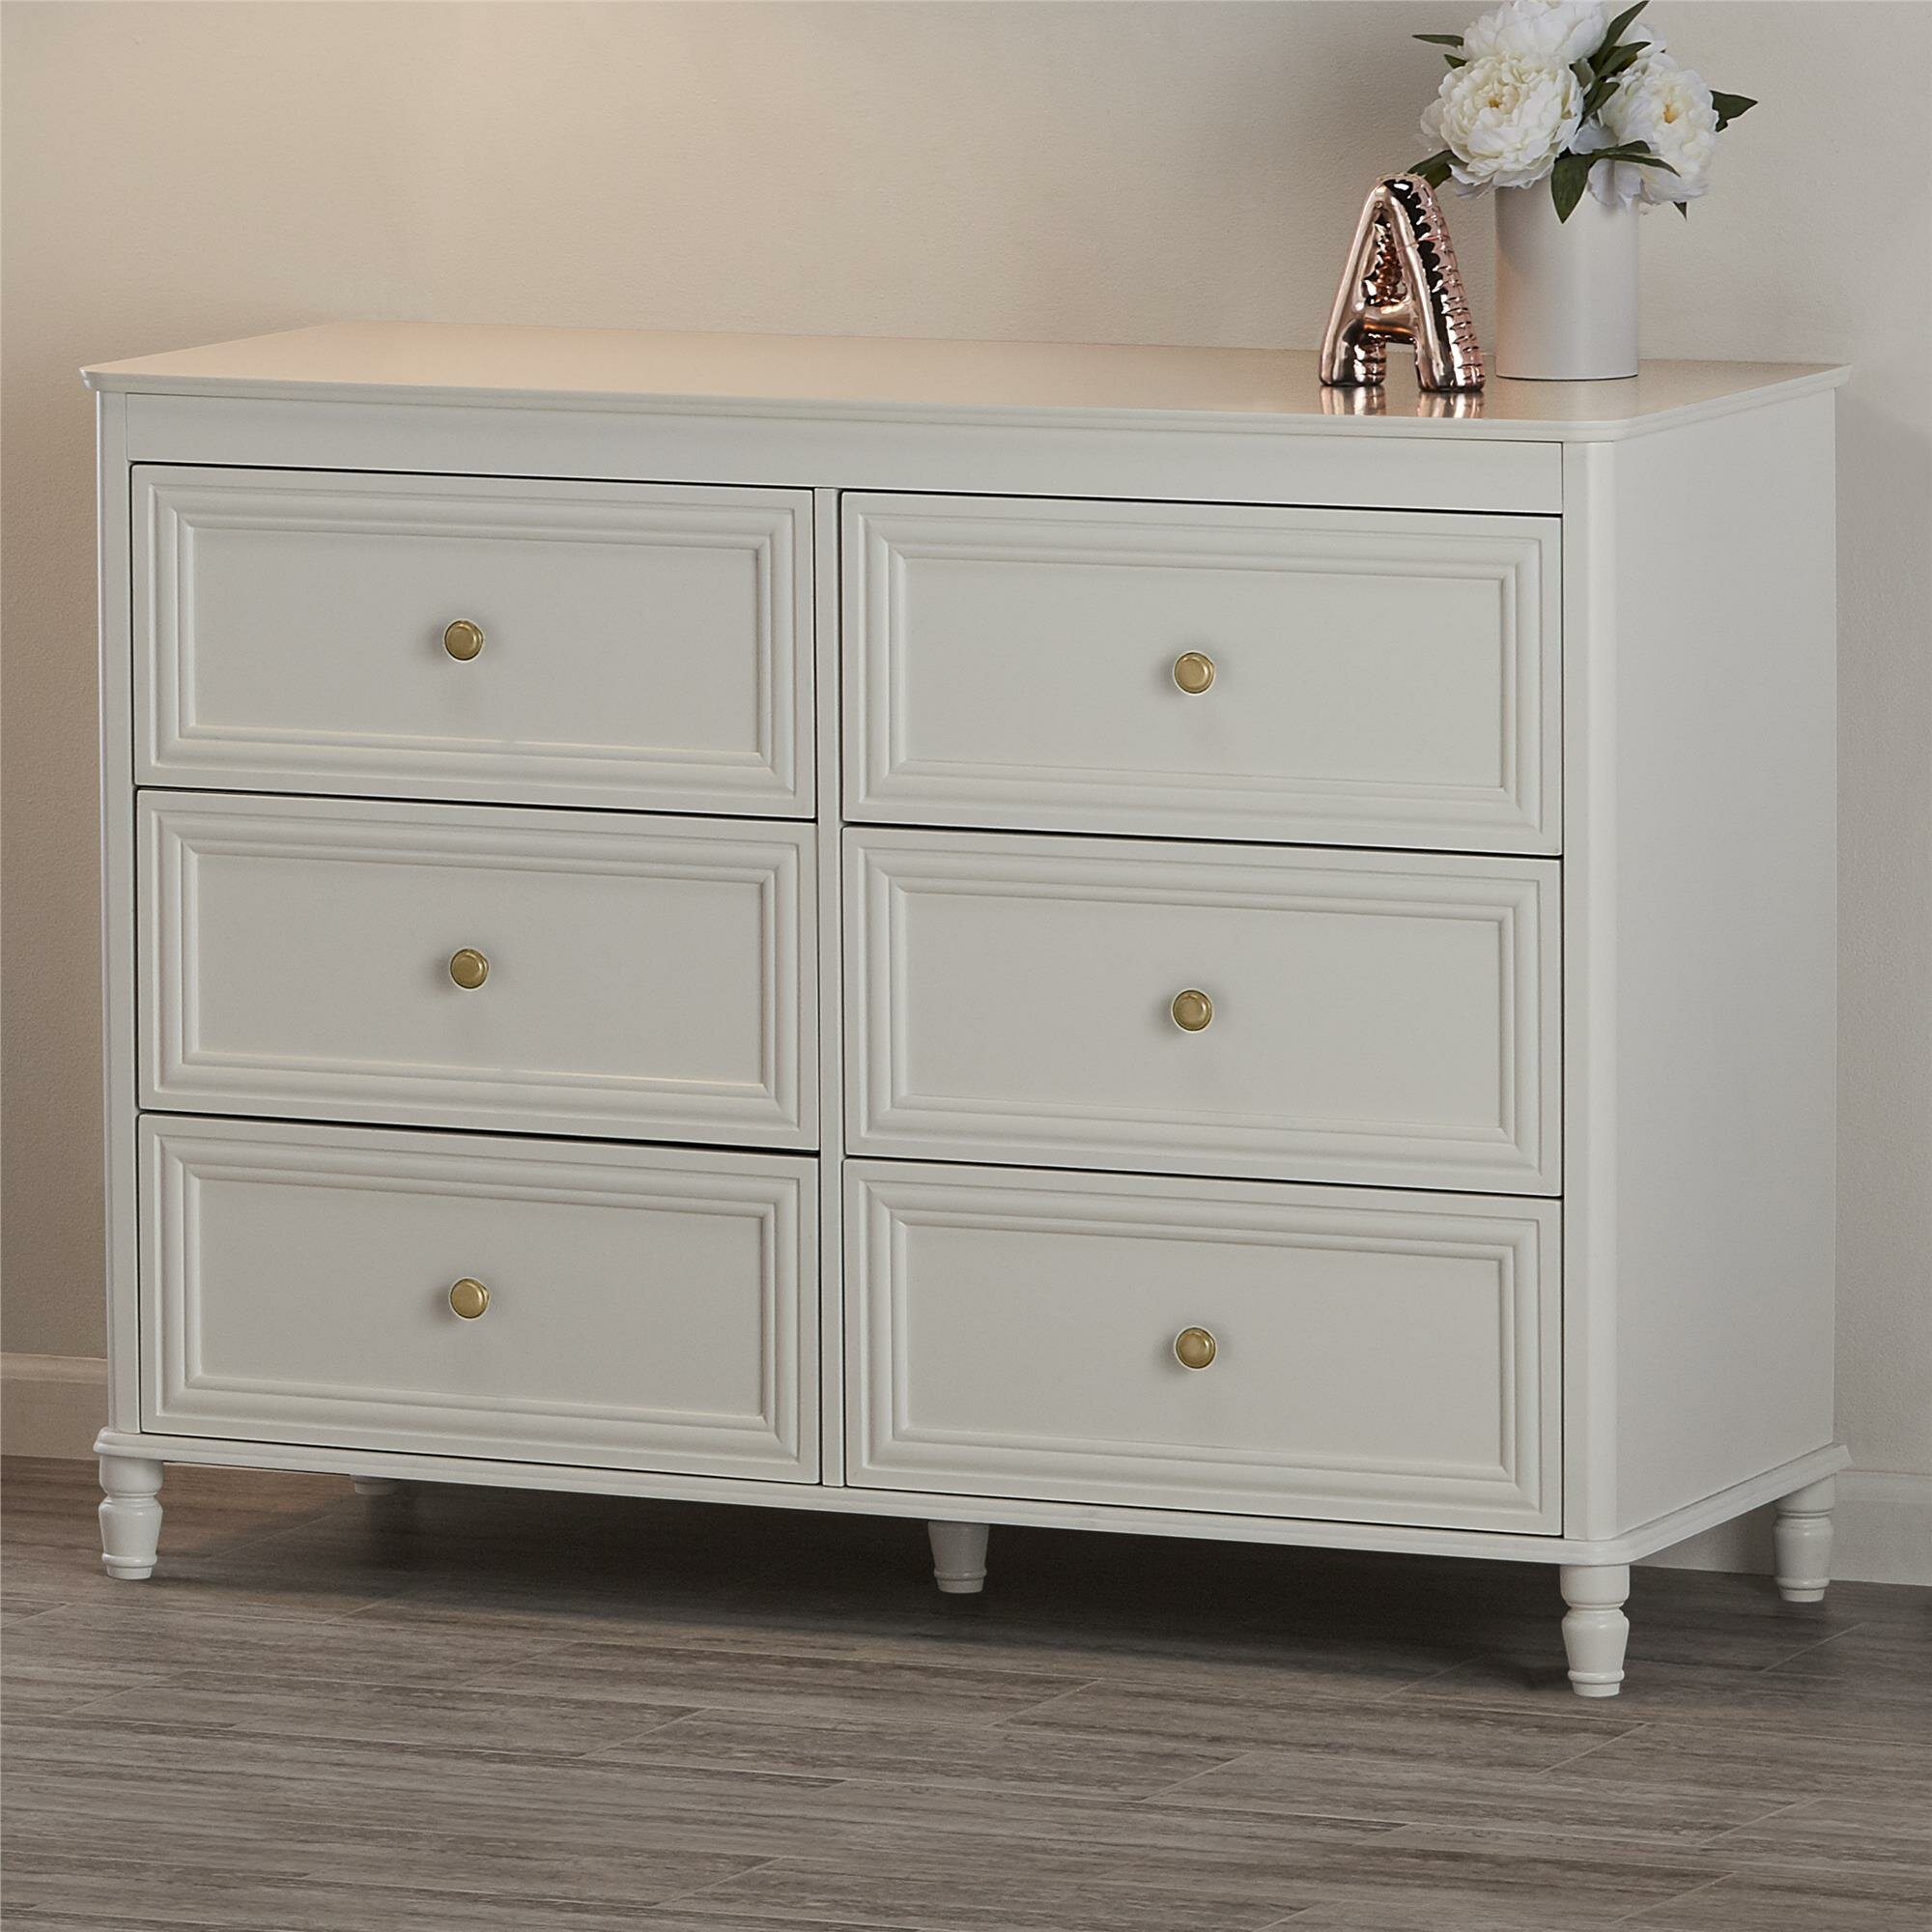 storage dresser furniture hooker corsica drawer bedroom